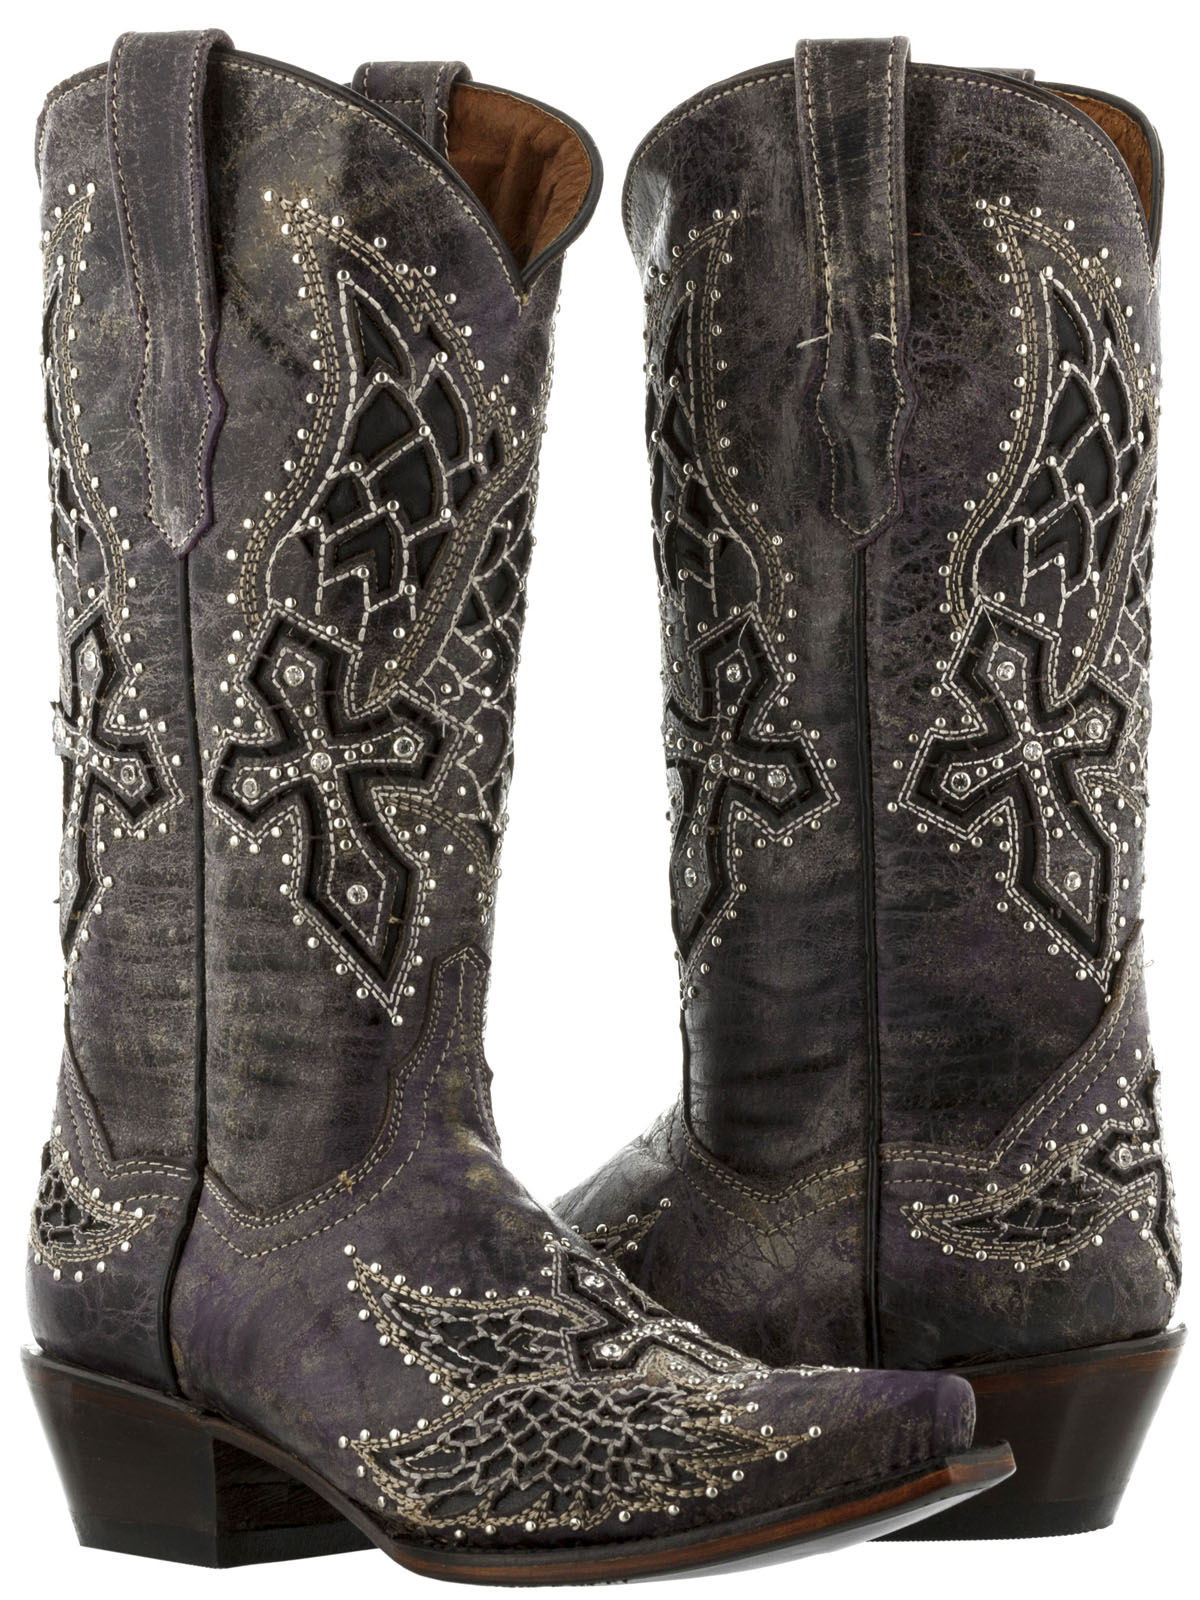 920d6d1e246 Cowgirl Boots with Rhinestones